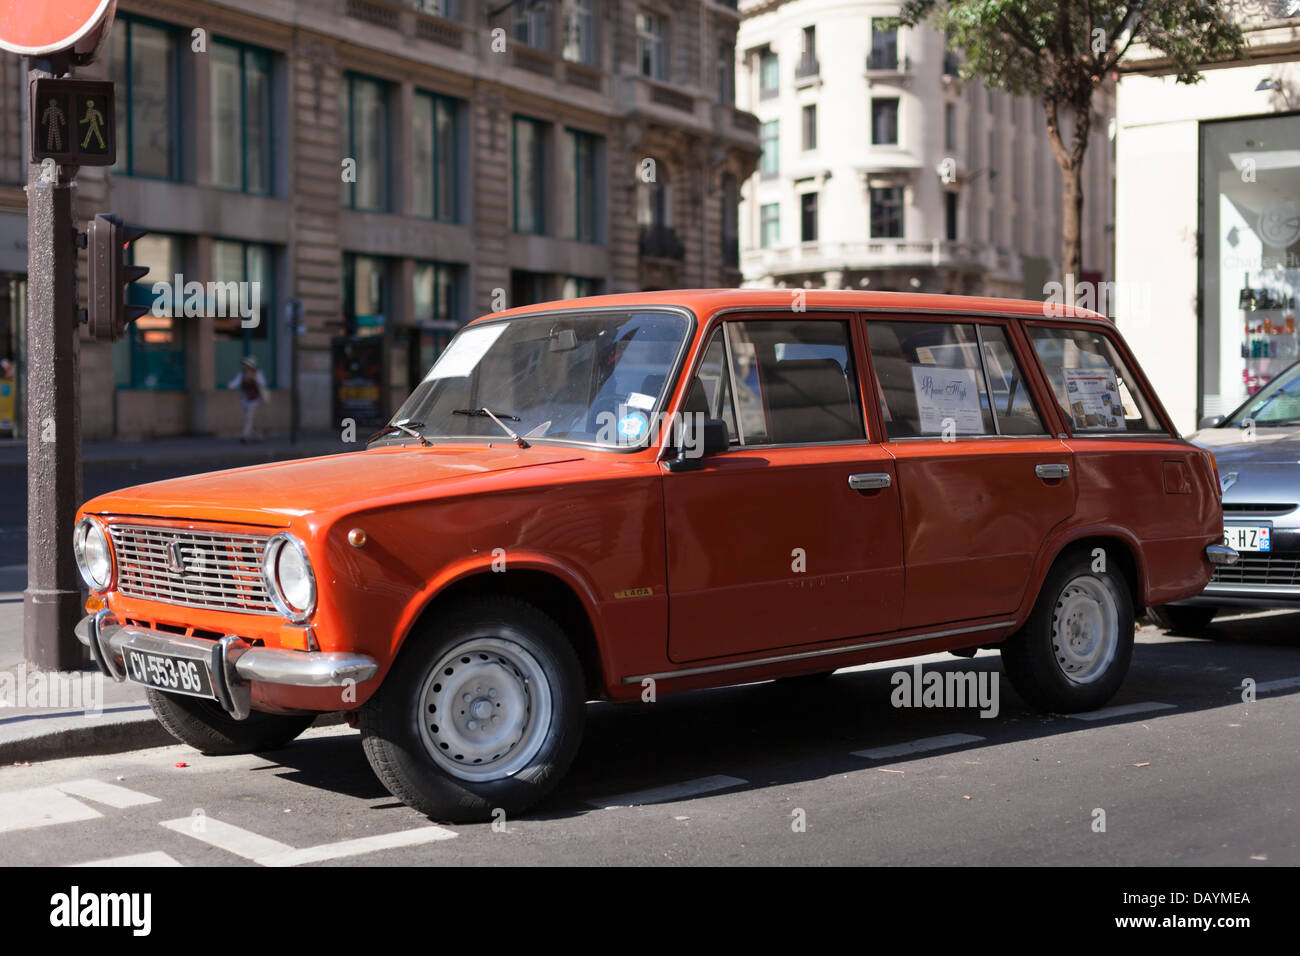 A Lada 2102 estate parked in Paris, France